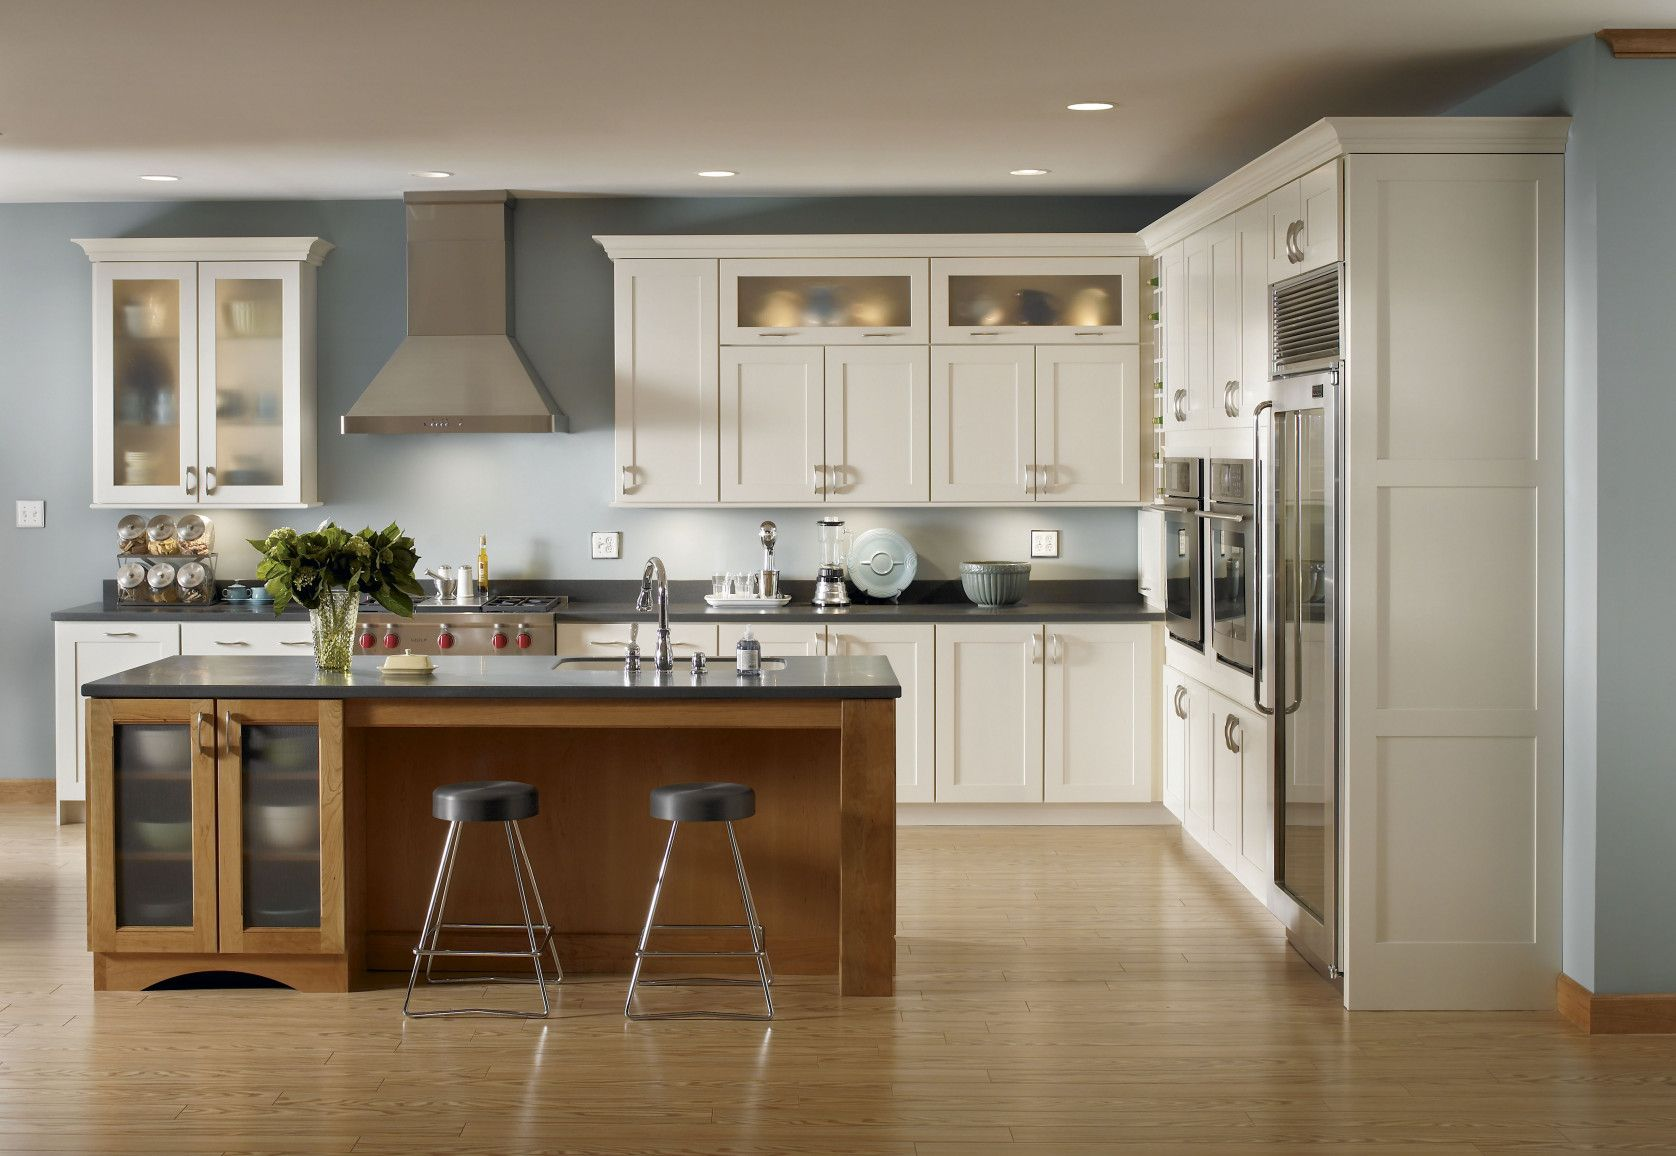 50 Kraftmaid Kitchen Cabinets Price List Download Kitchen Nook Lighting Ideas Check More At H Kitchen Cabinets Kraftmaid Kitchens Kraftmaid Kitchen Cabinets